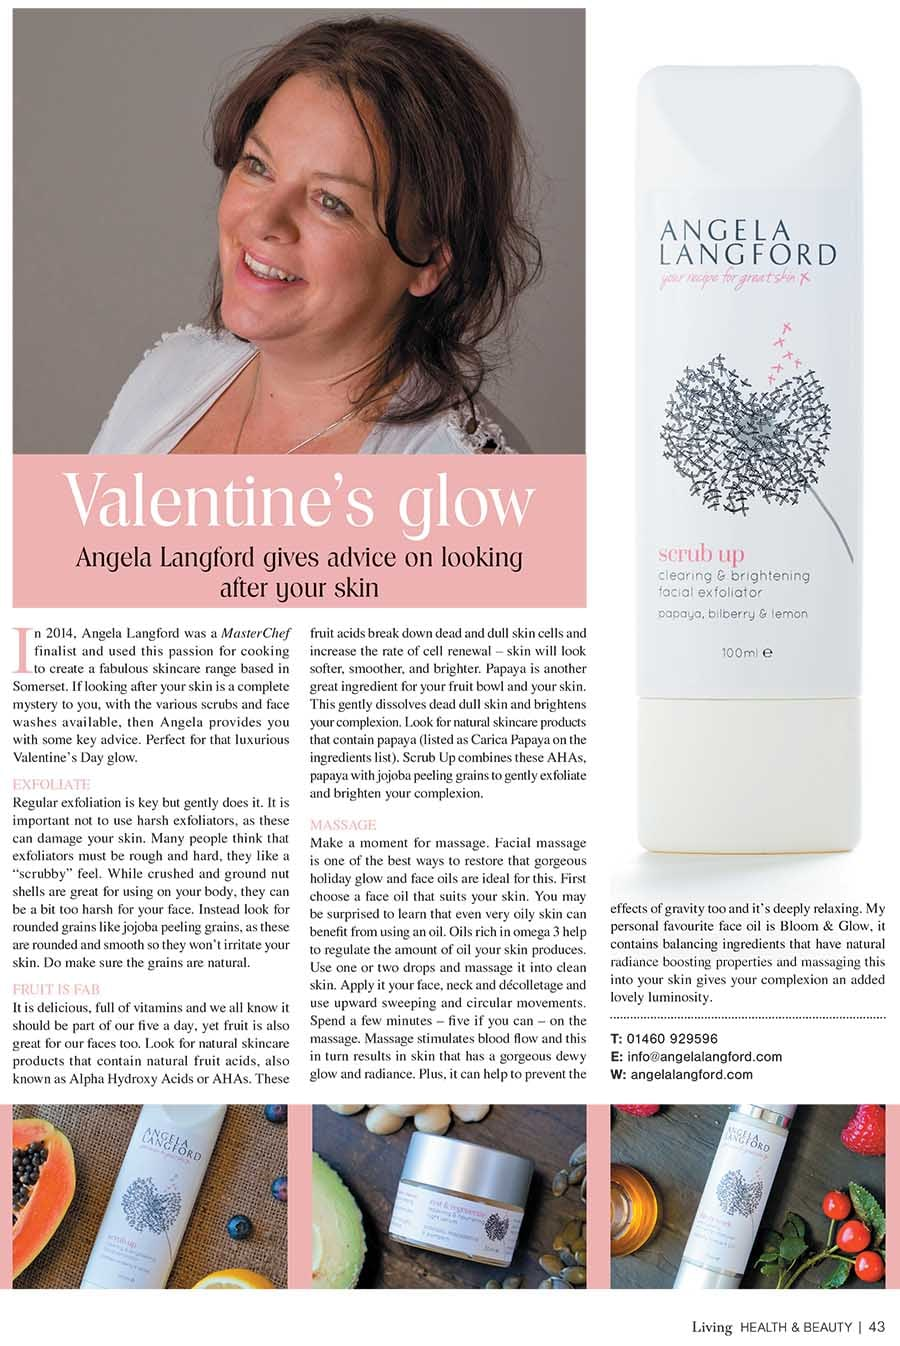 Somerset Gazette talks to Angela Langford Skincare about looking after your skin this February